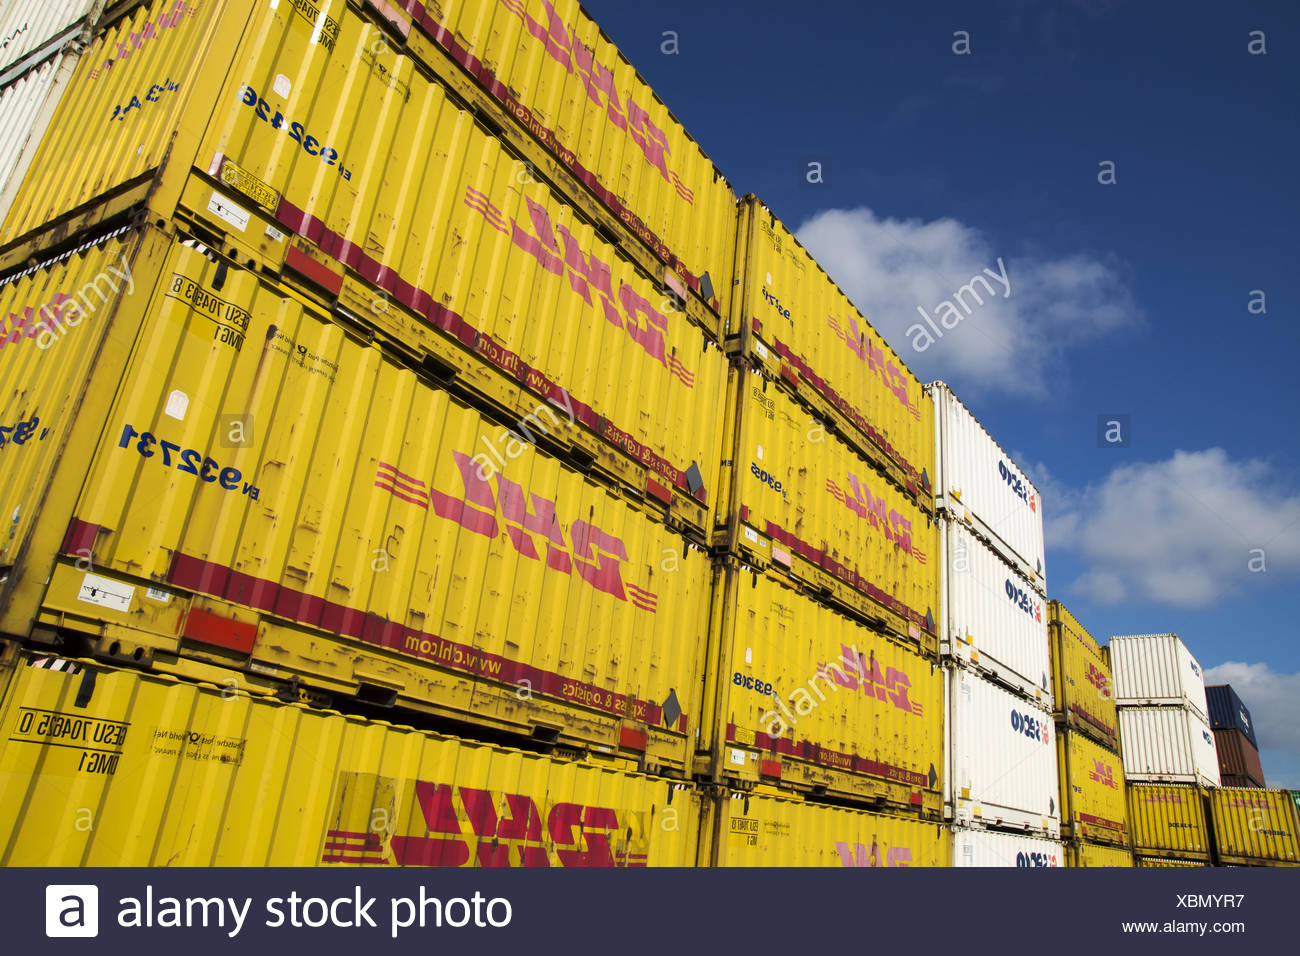 In the container harbour of Dortmund, Germany Stock Photo